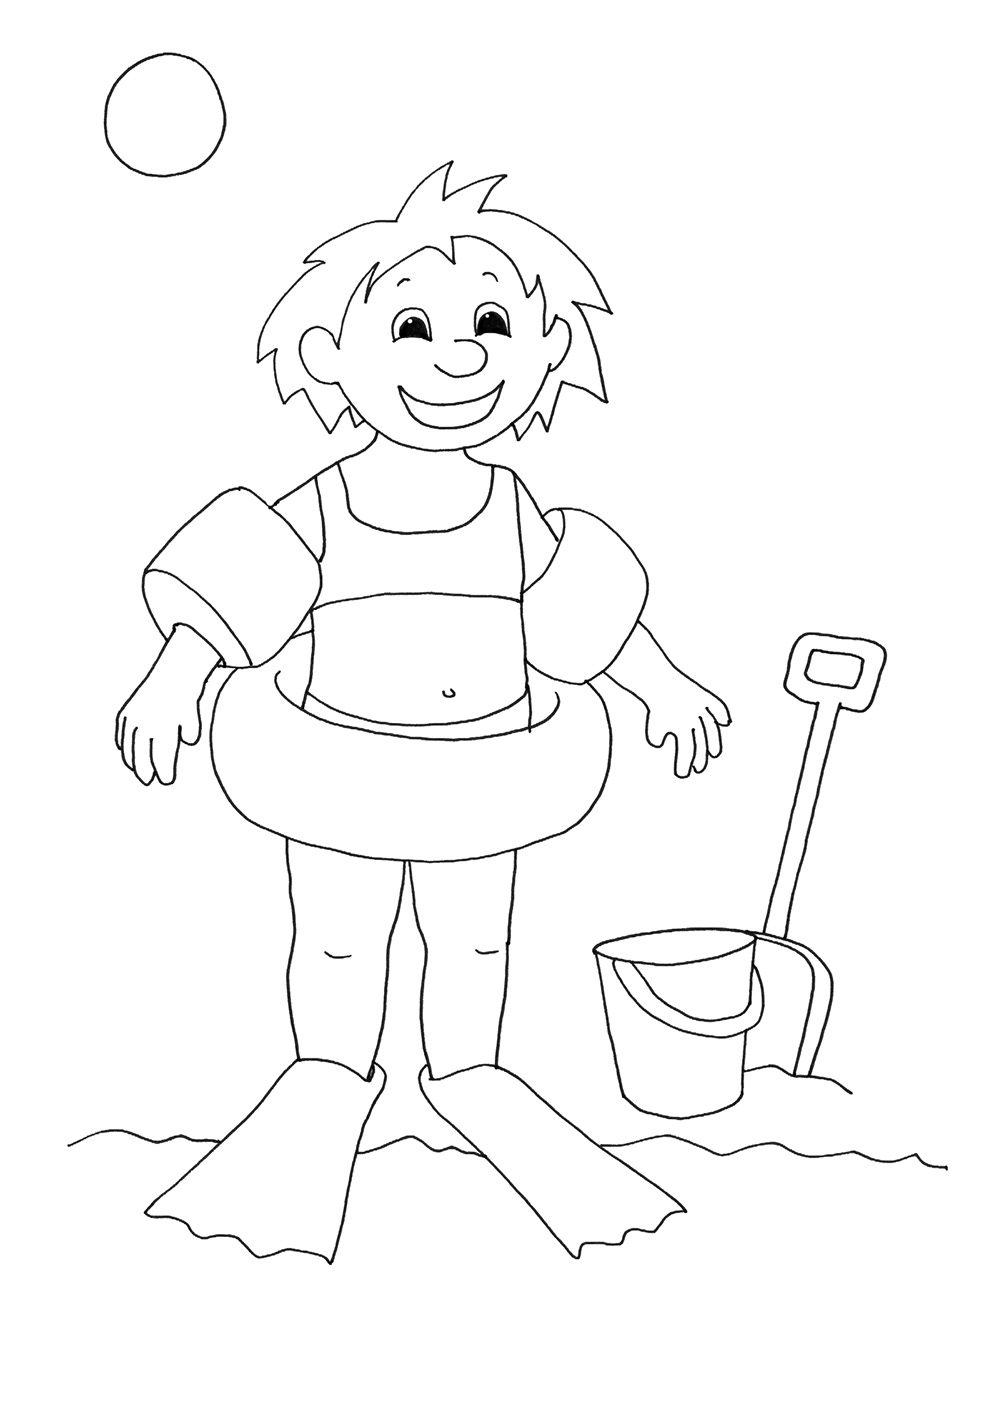 1004x1403 Summer Coloring Pages To Print